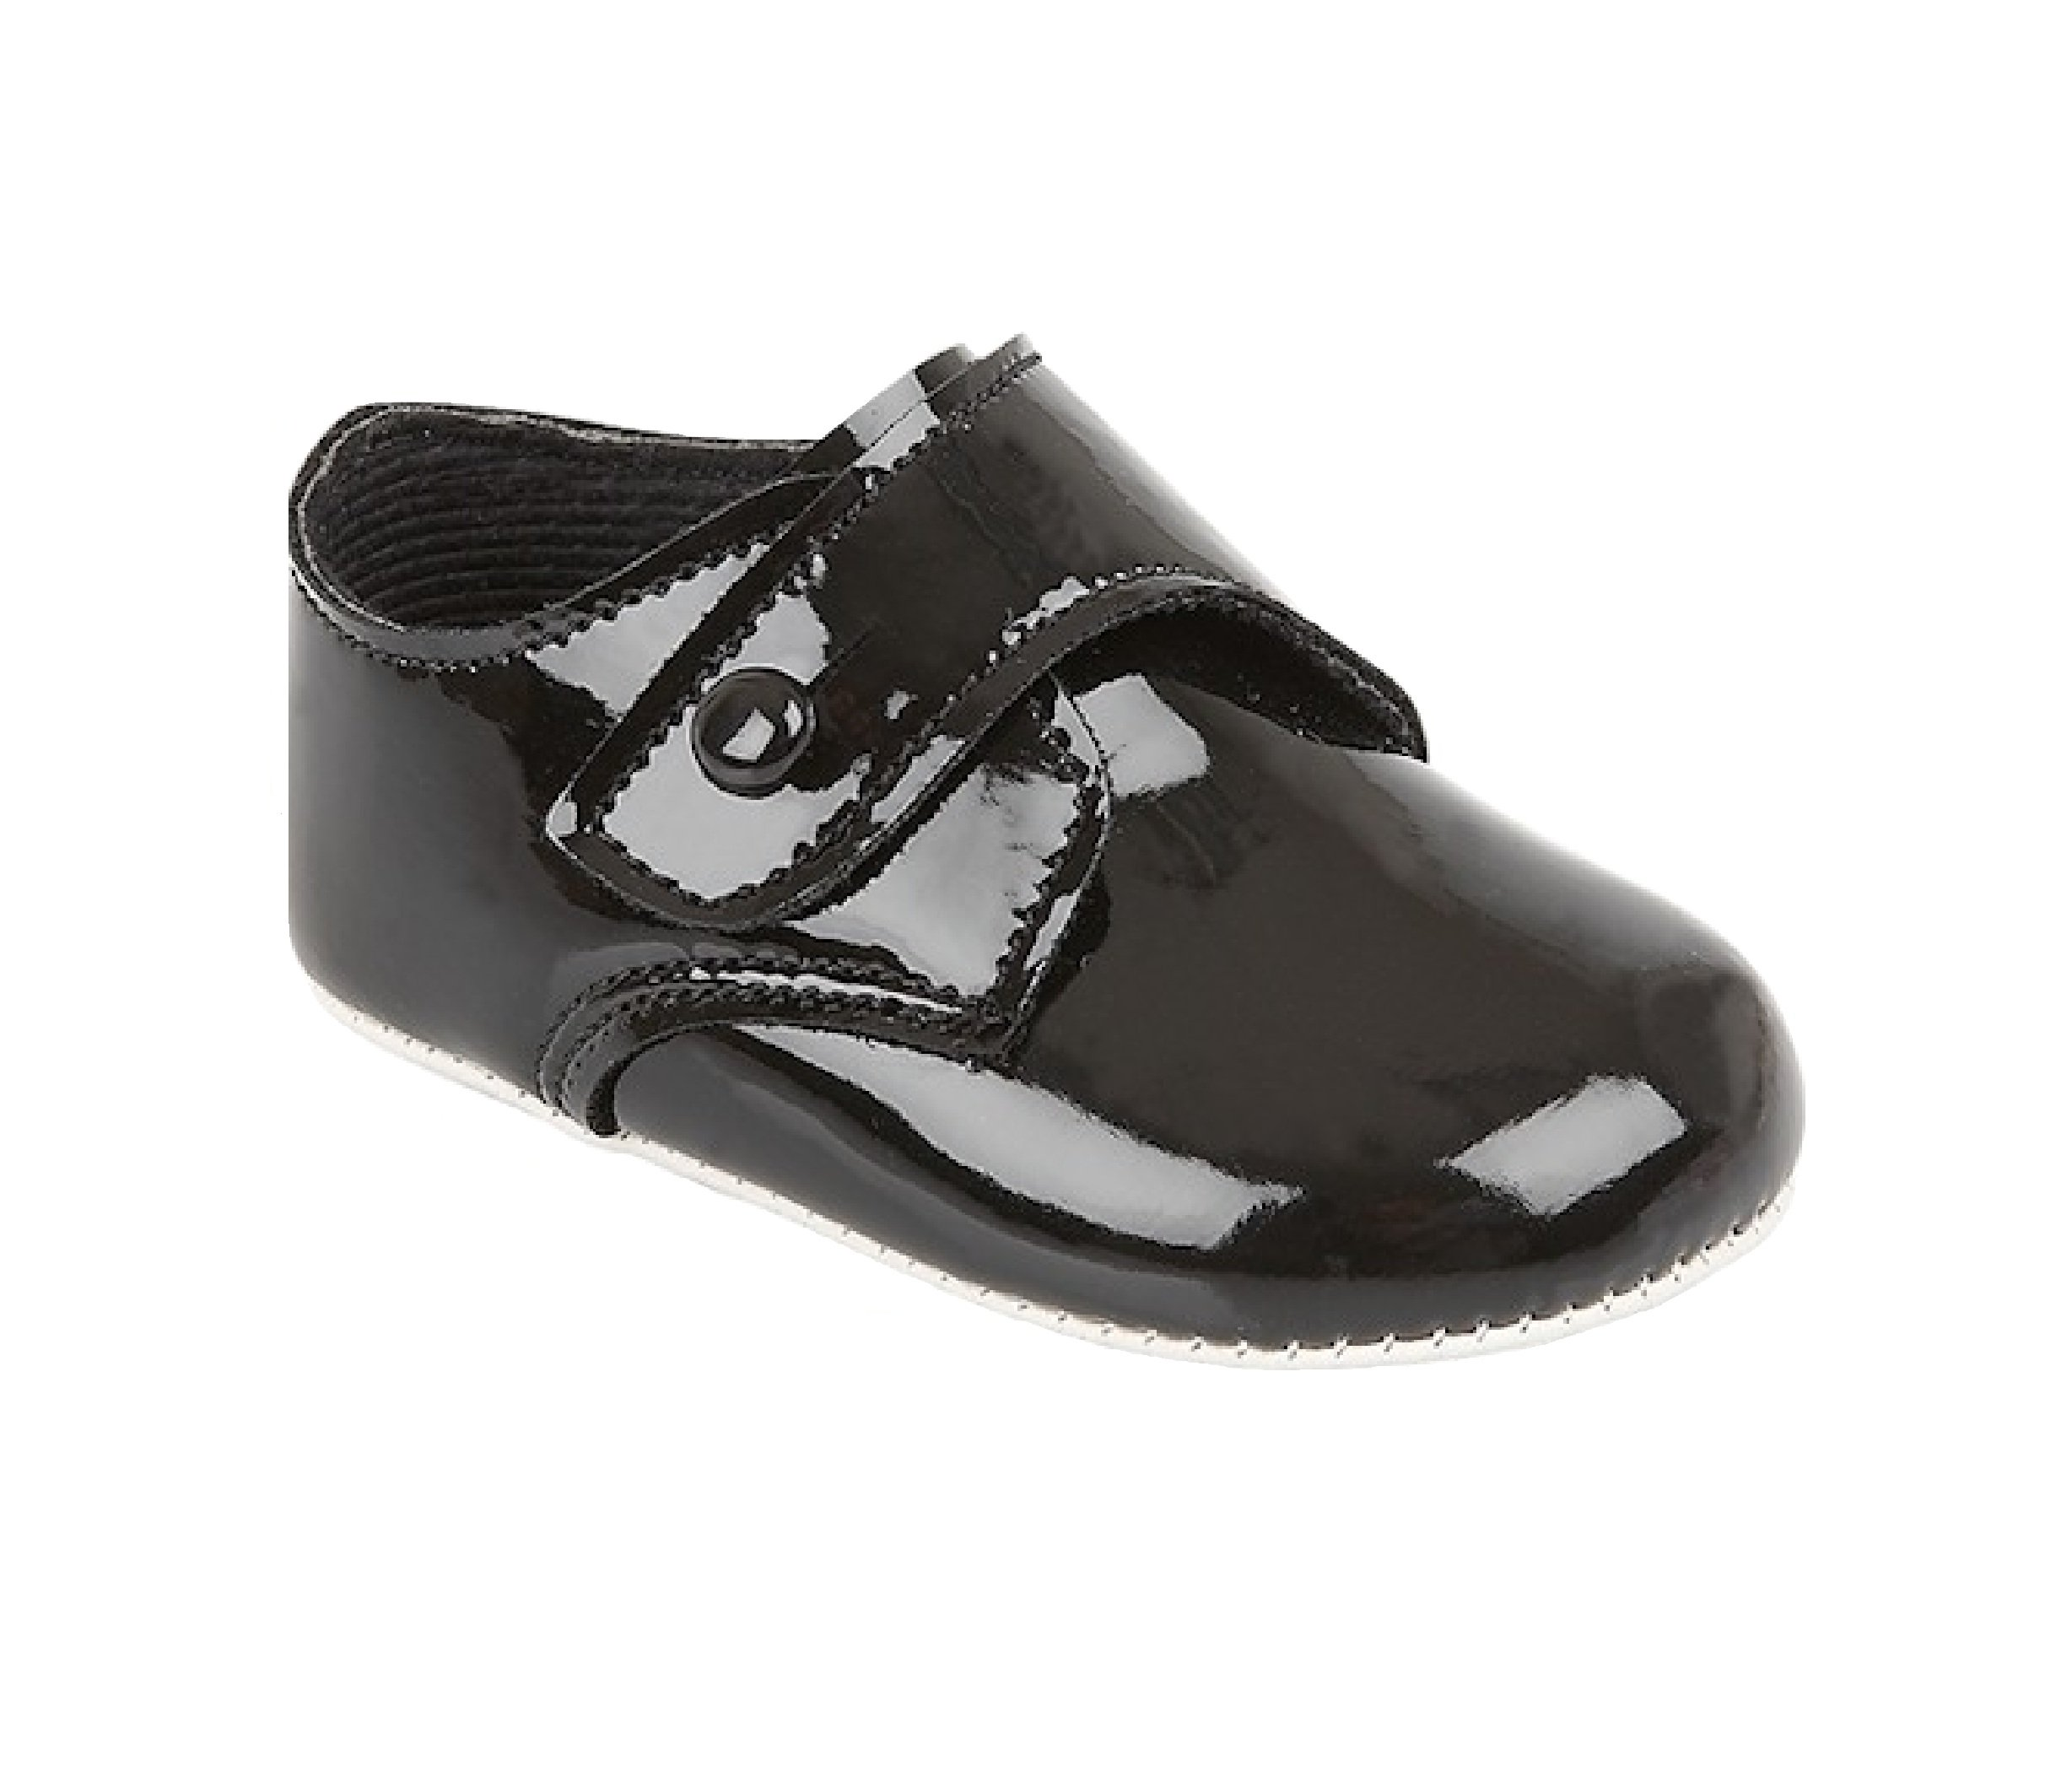 Black Patent Shoes for Baby Boy 0-3 Months 3.5'' Insole